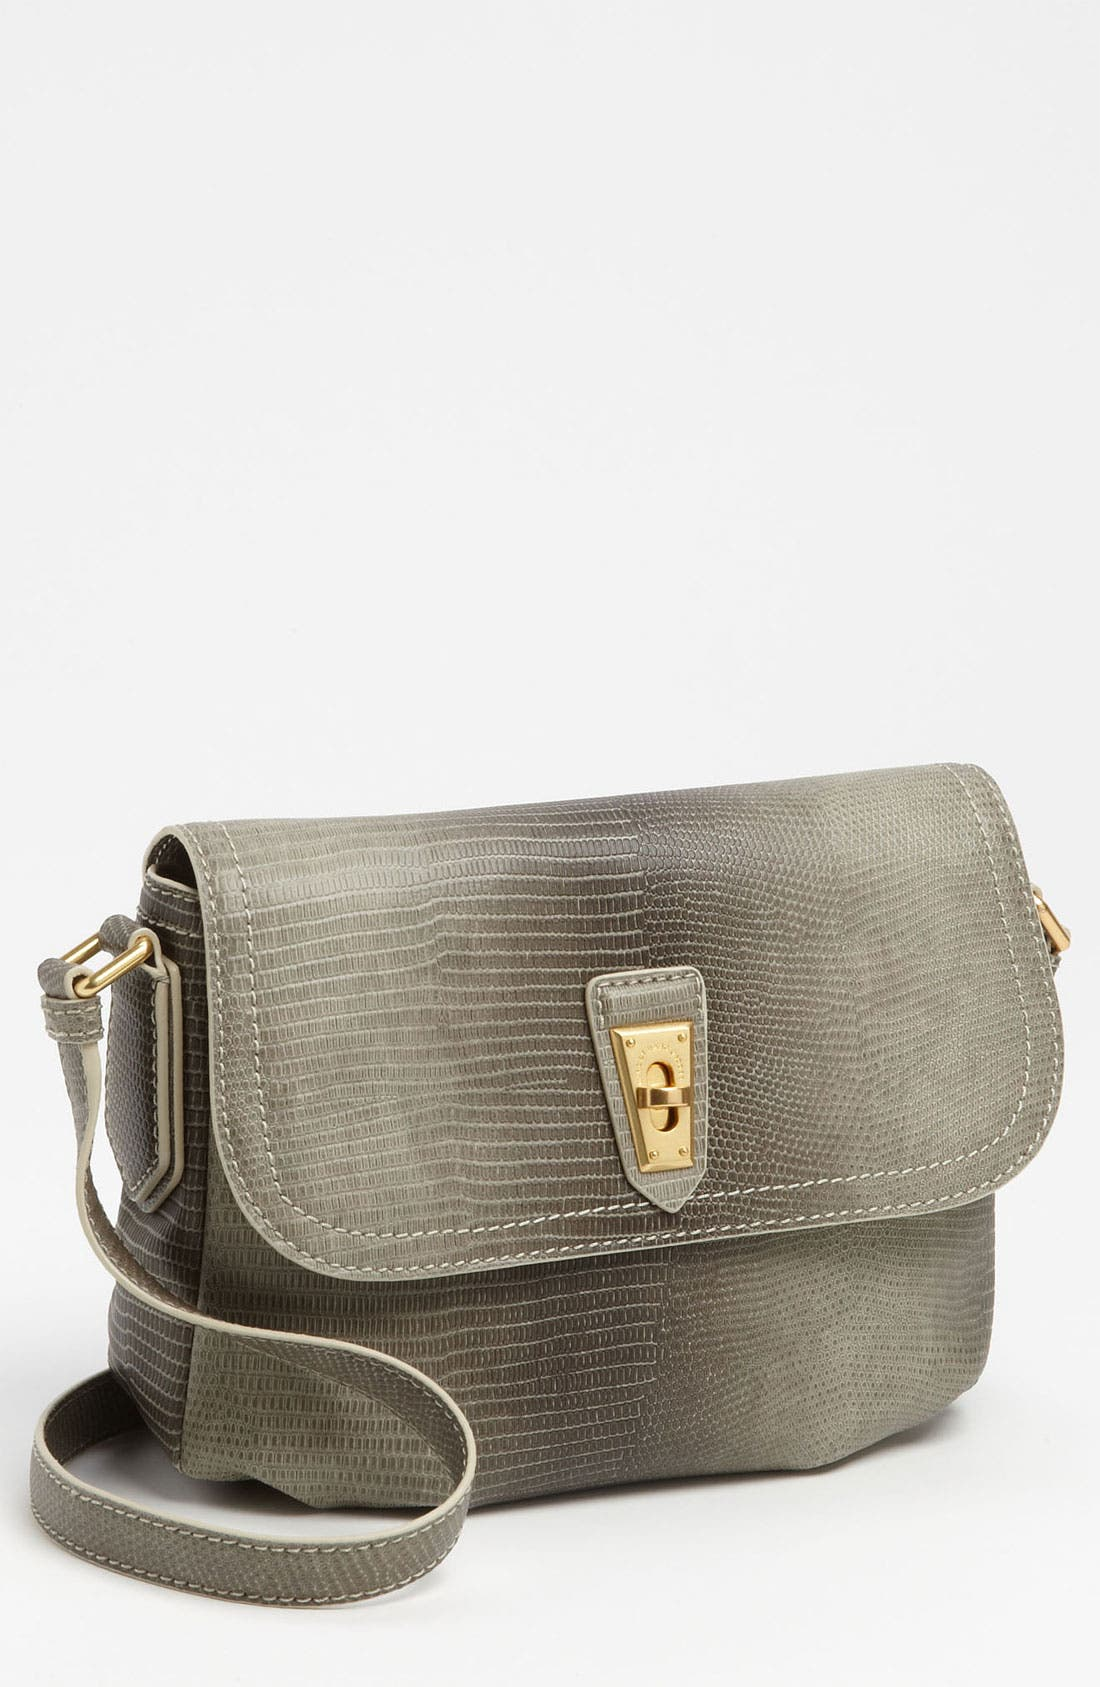 Main Image - MARC BY MARC JACOBS 'Embossed Lizzie' Crossbody Bag